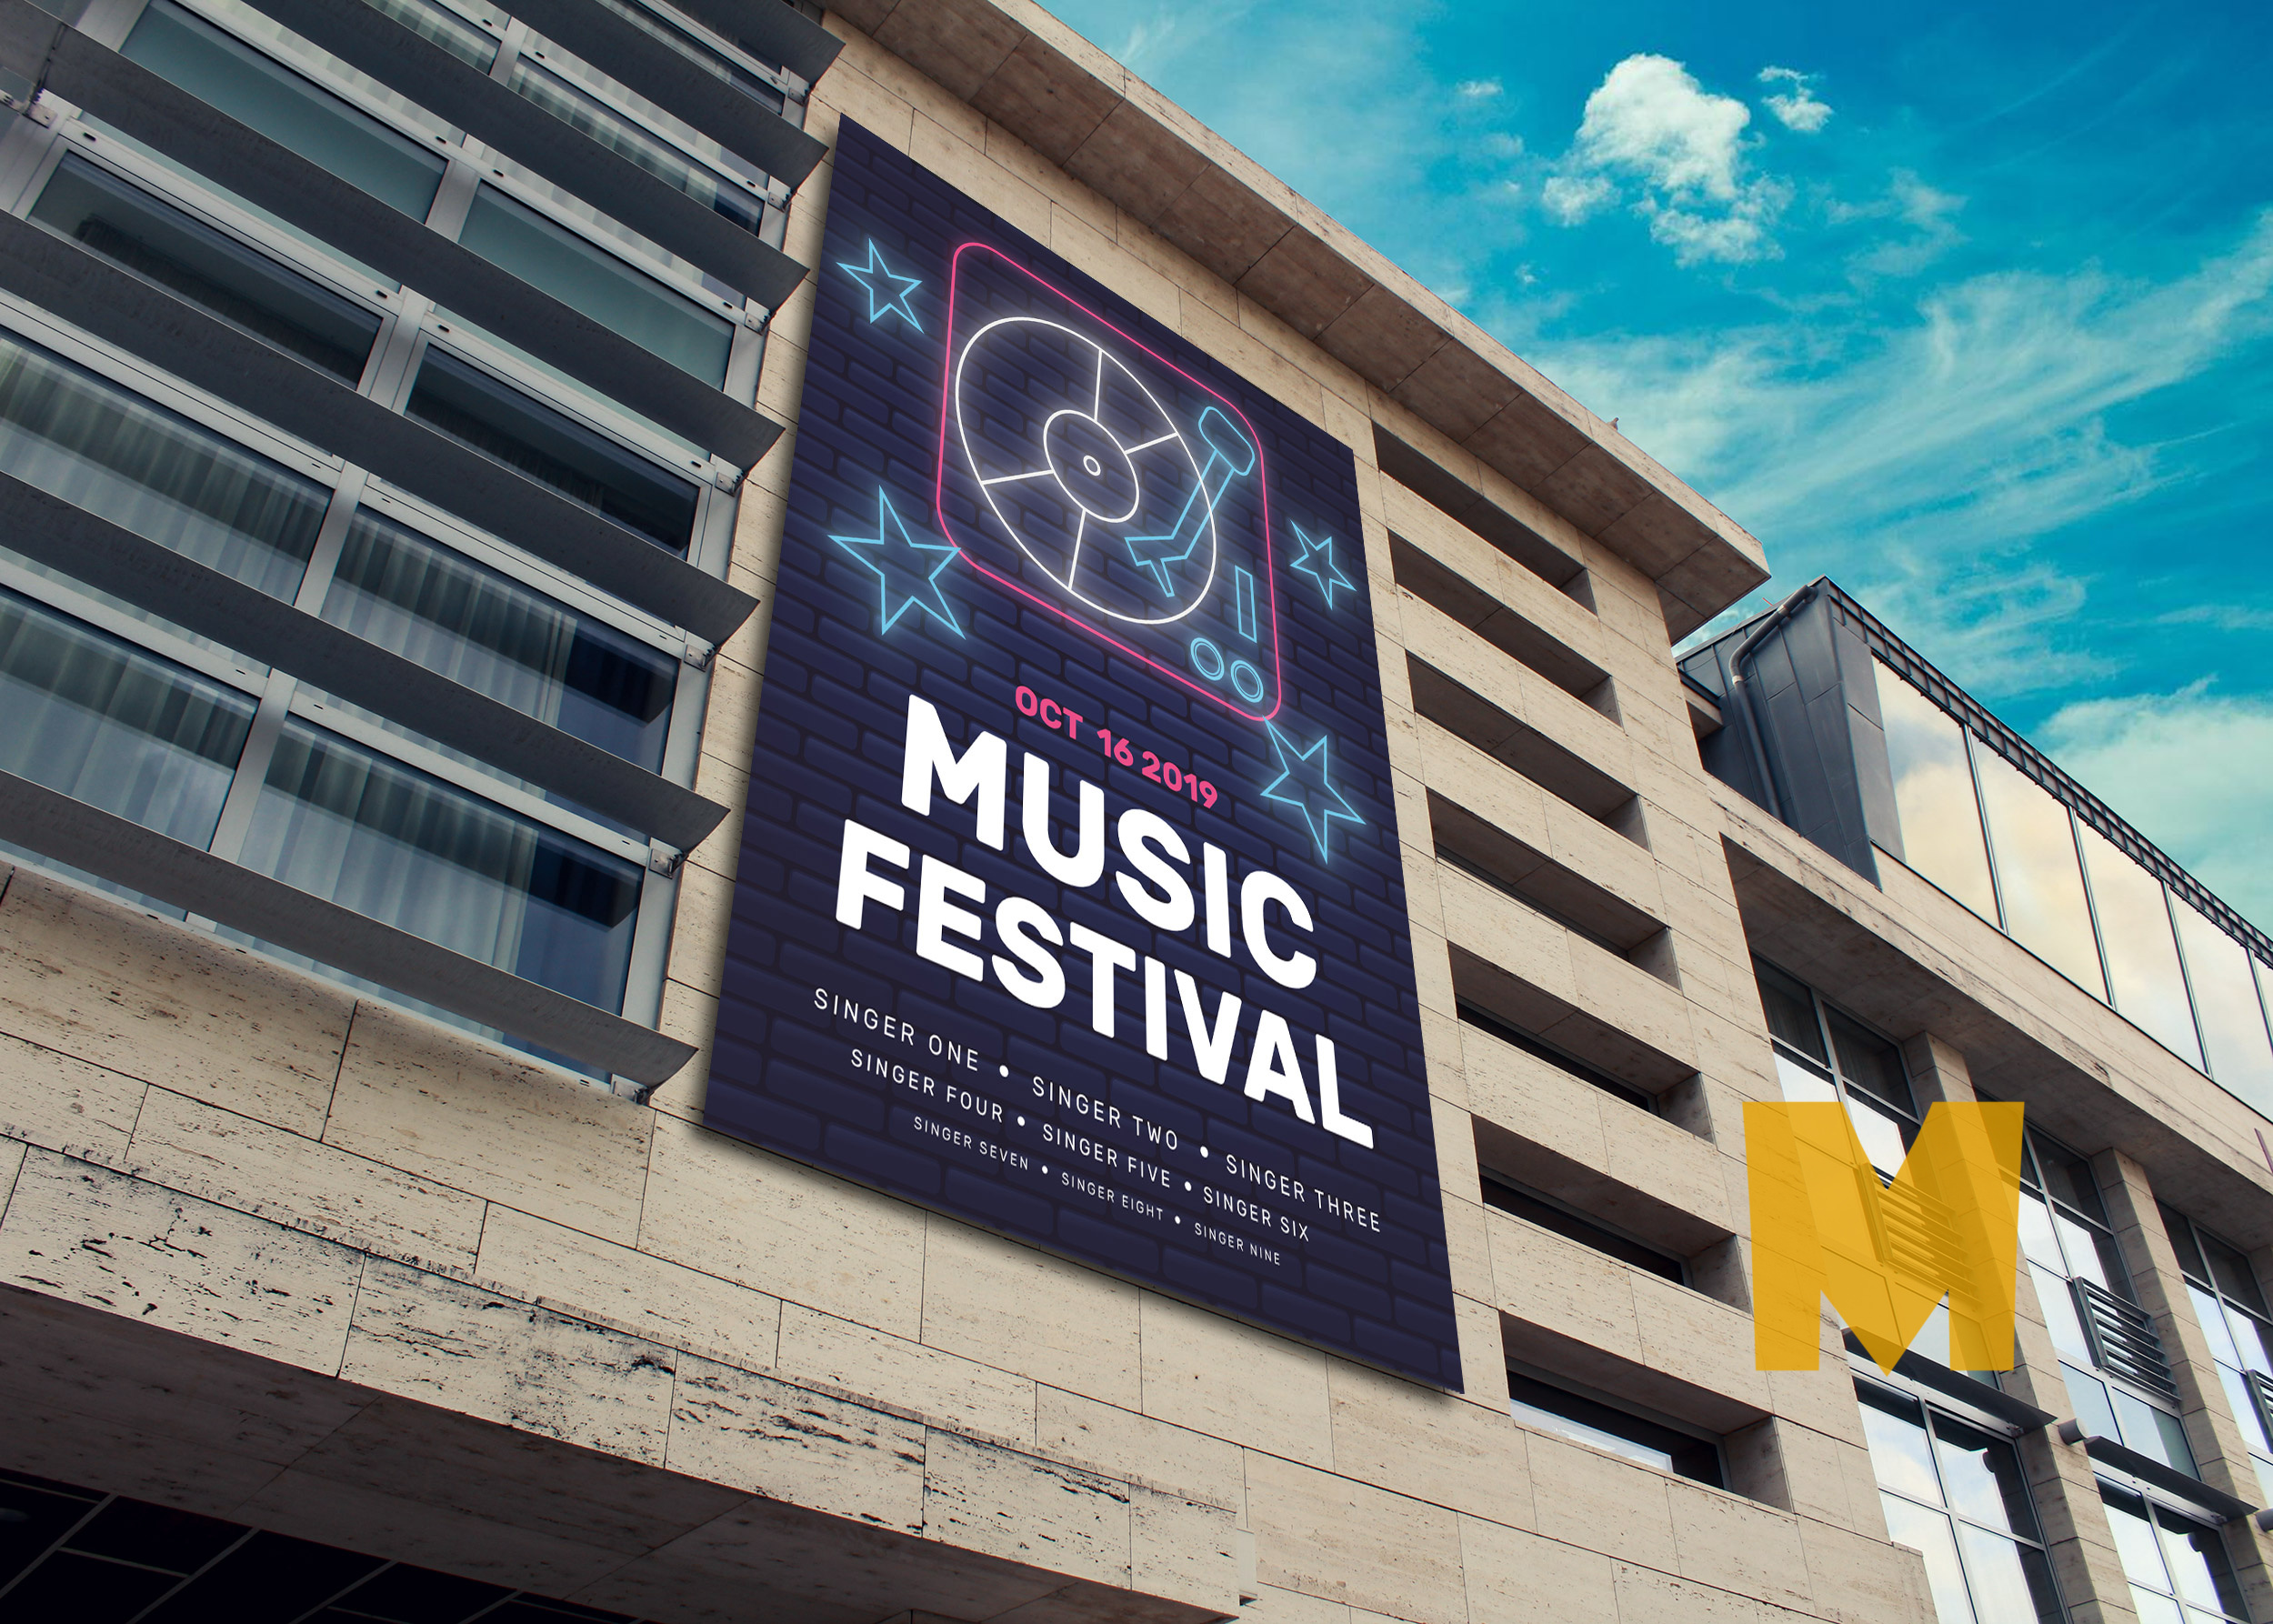 Click here and download the event ticket or festival party mockup graphic · window, mac, linux · last updated 2021 · commercial licence included. Free Poster Easel Mockup Psd Mockup Free Mockup